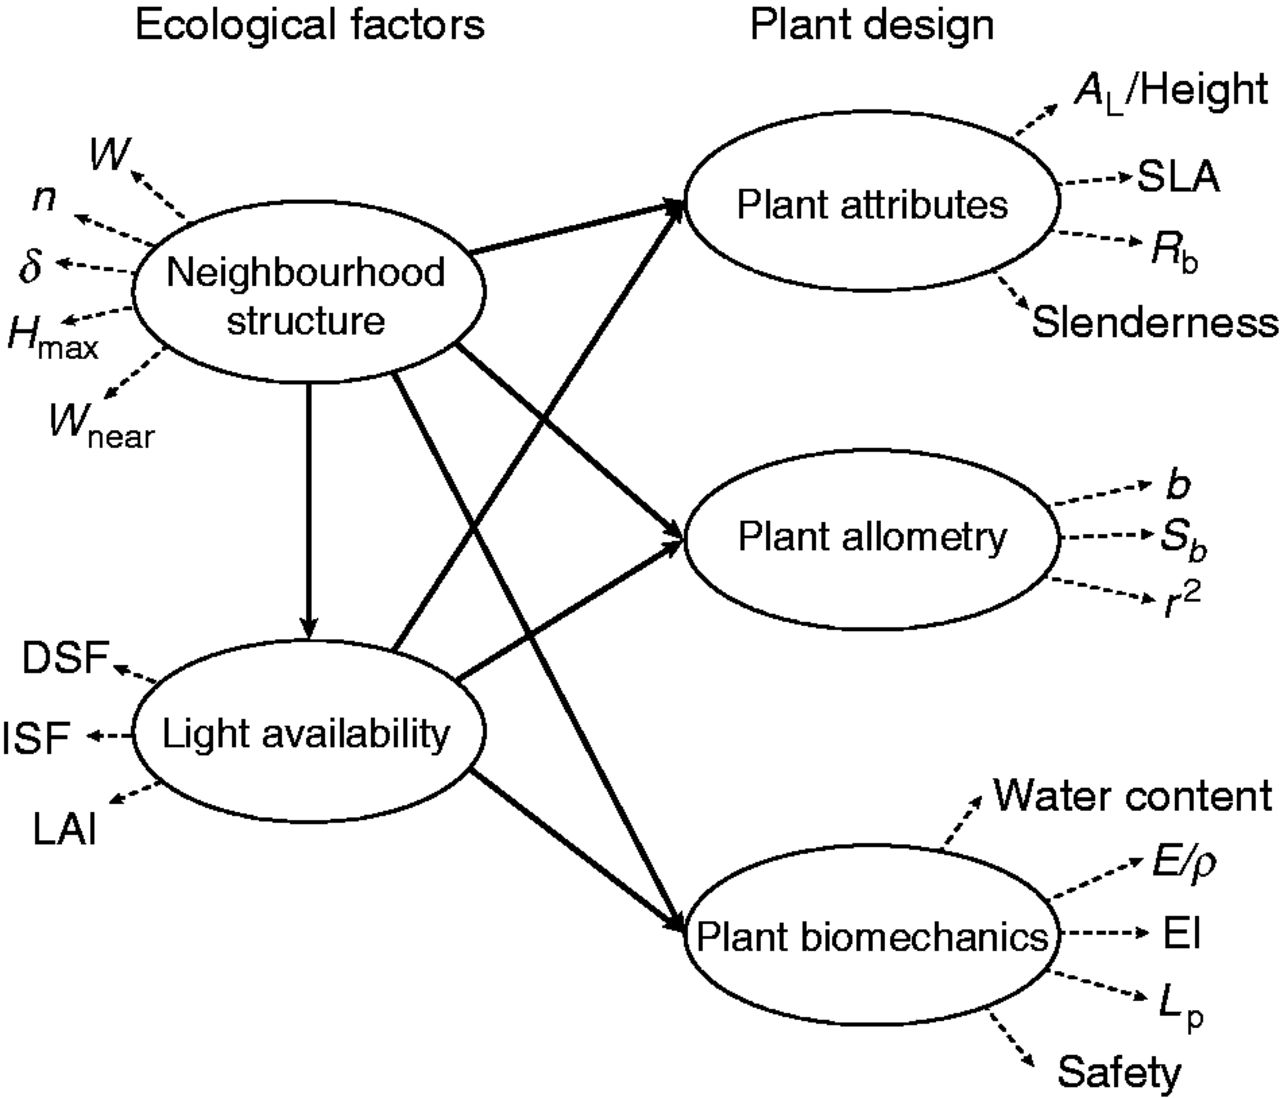 Plant design is affected by neighbourhood structure and